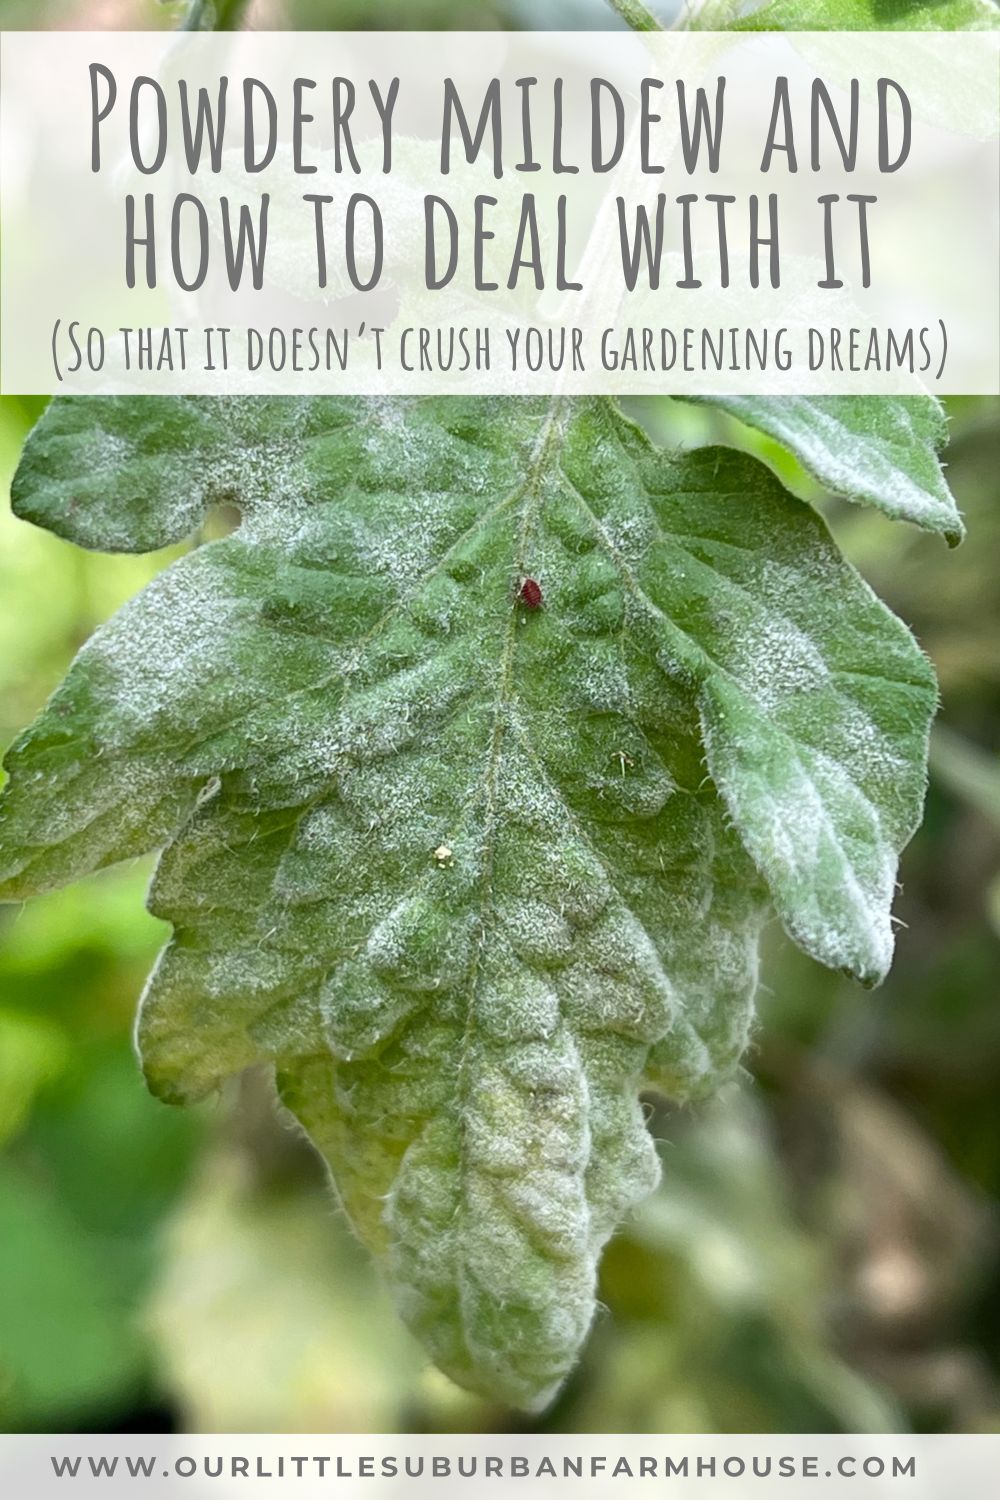 Powdery mildew and how to deal with it